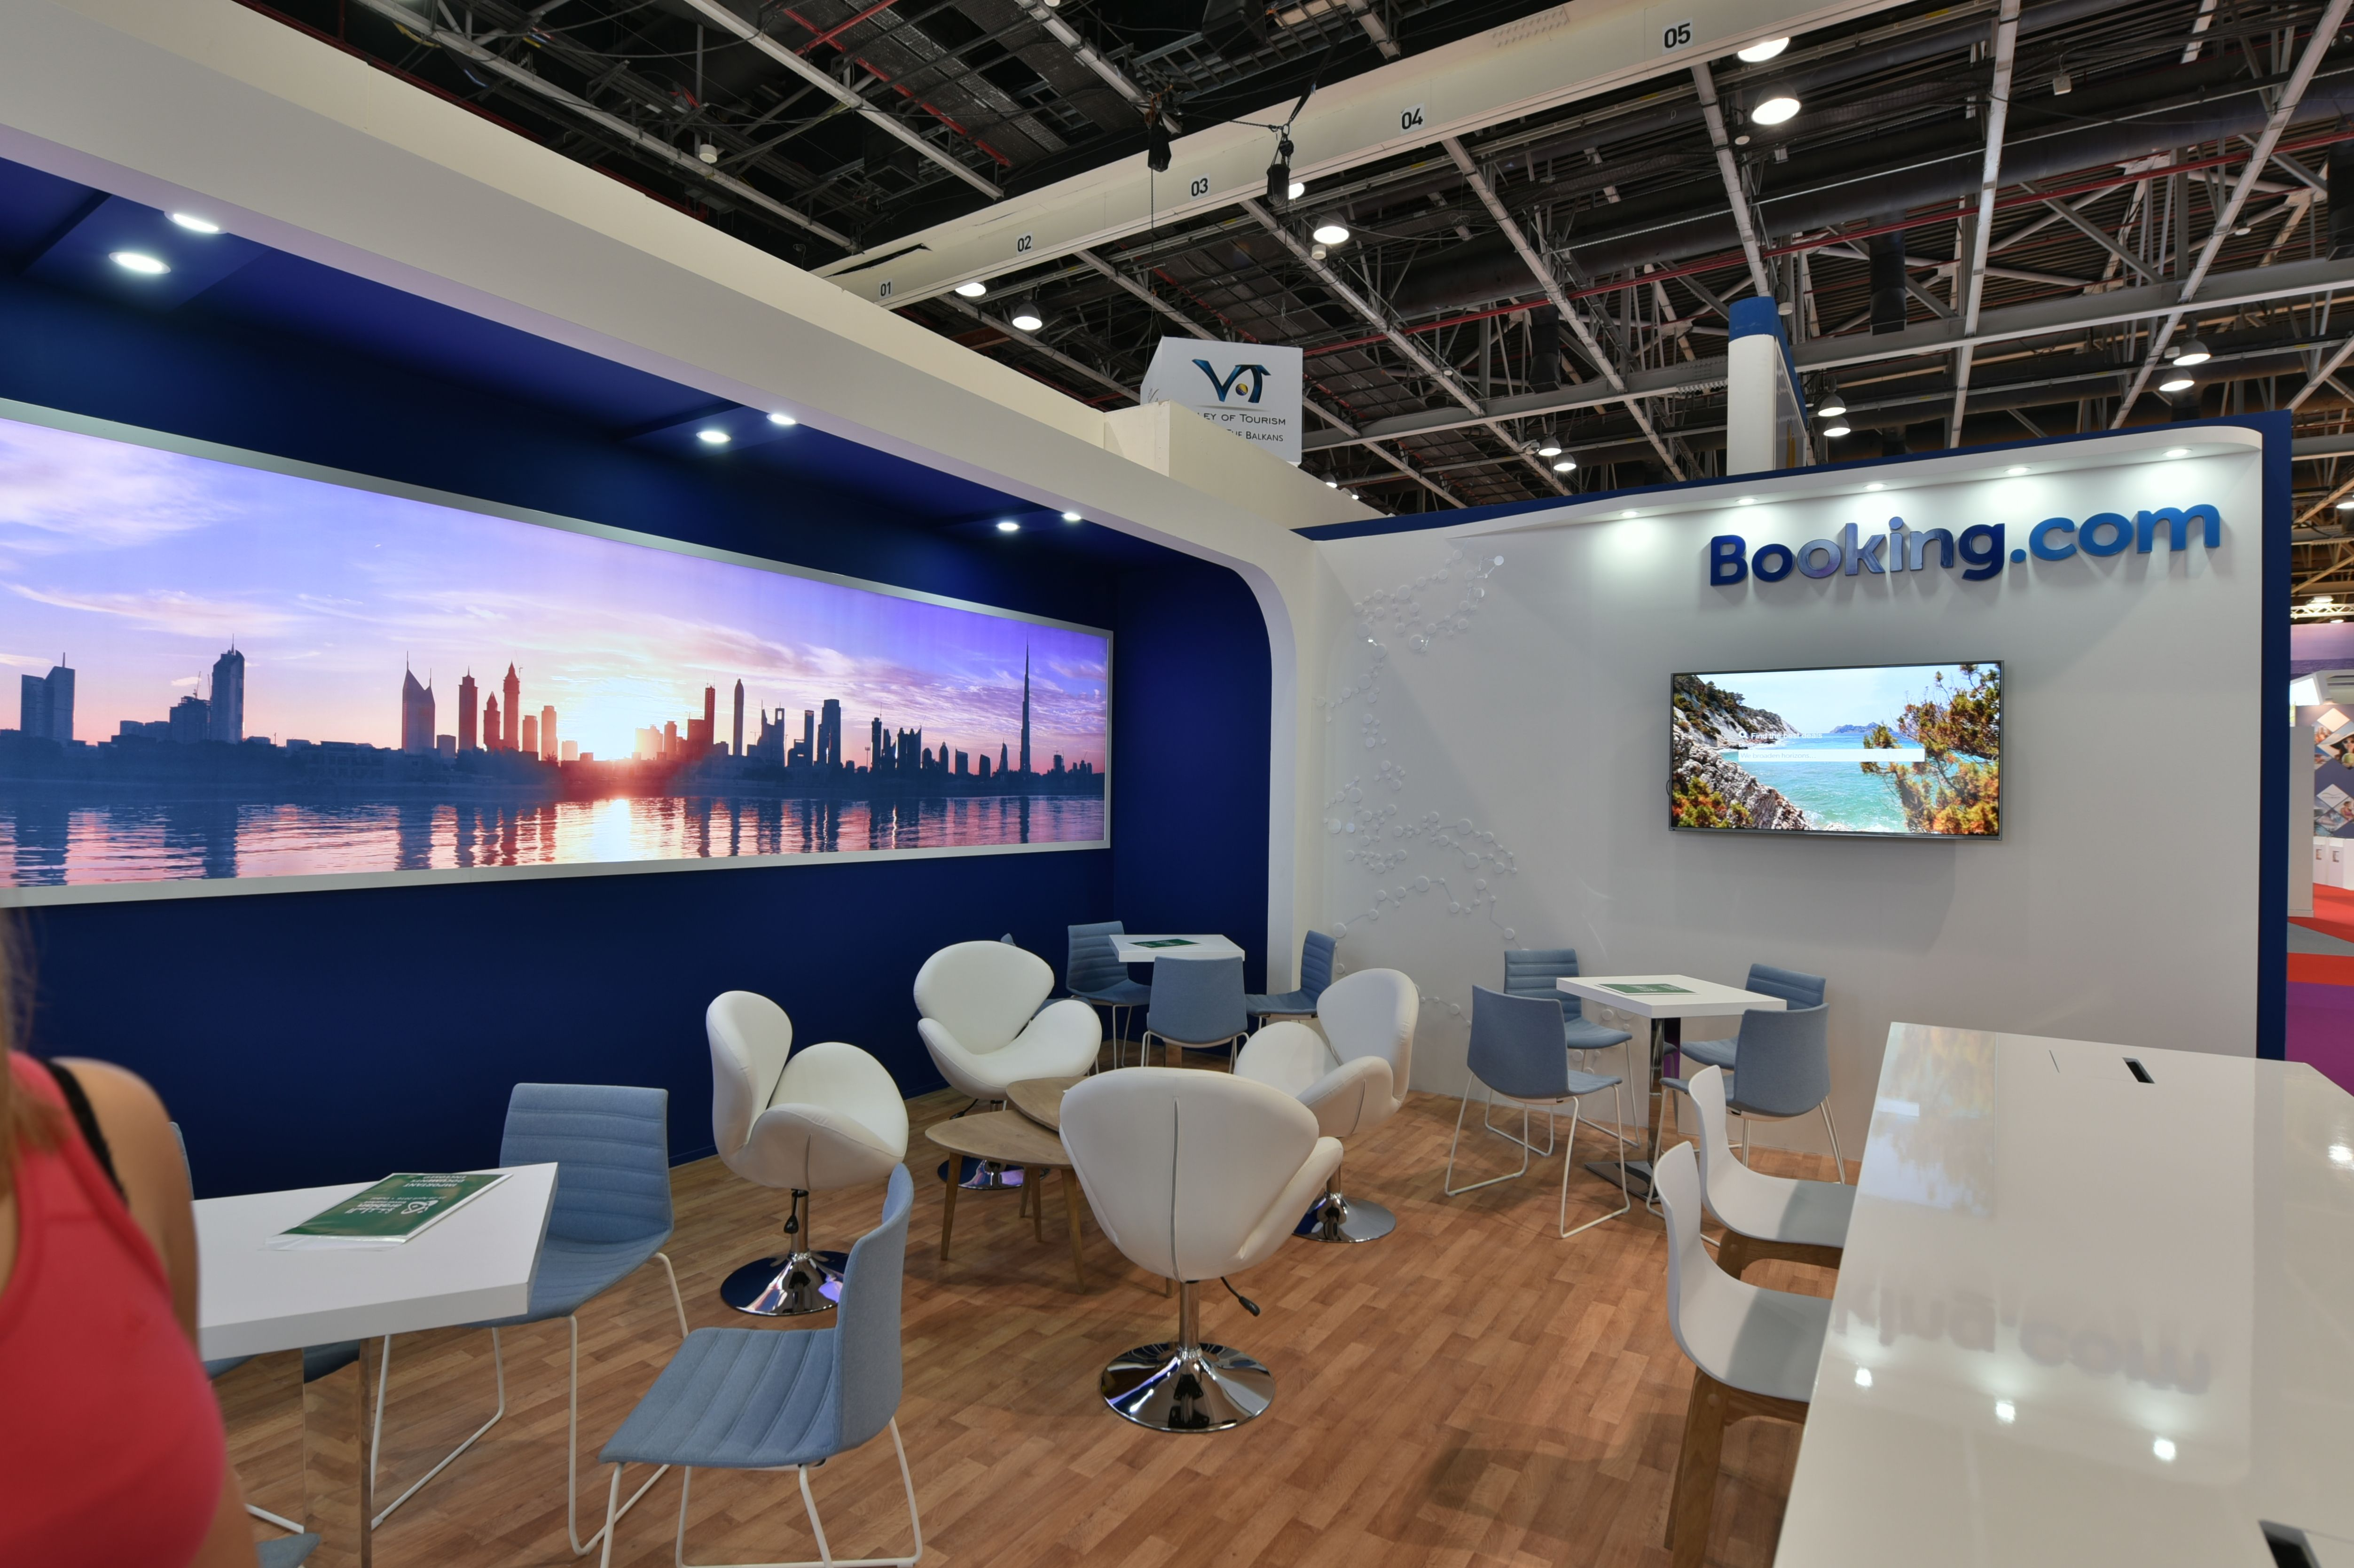 Bookingcom Exhibition Stand Design by Elevations UK for ATM Dubai